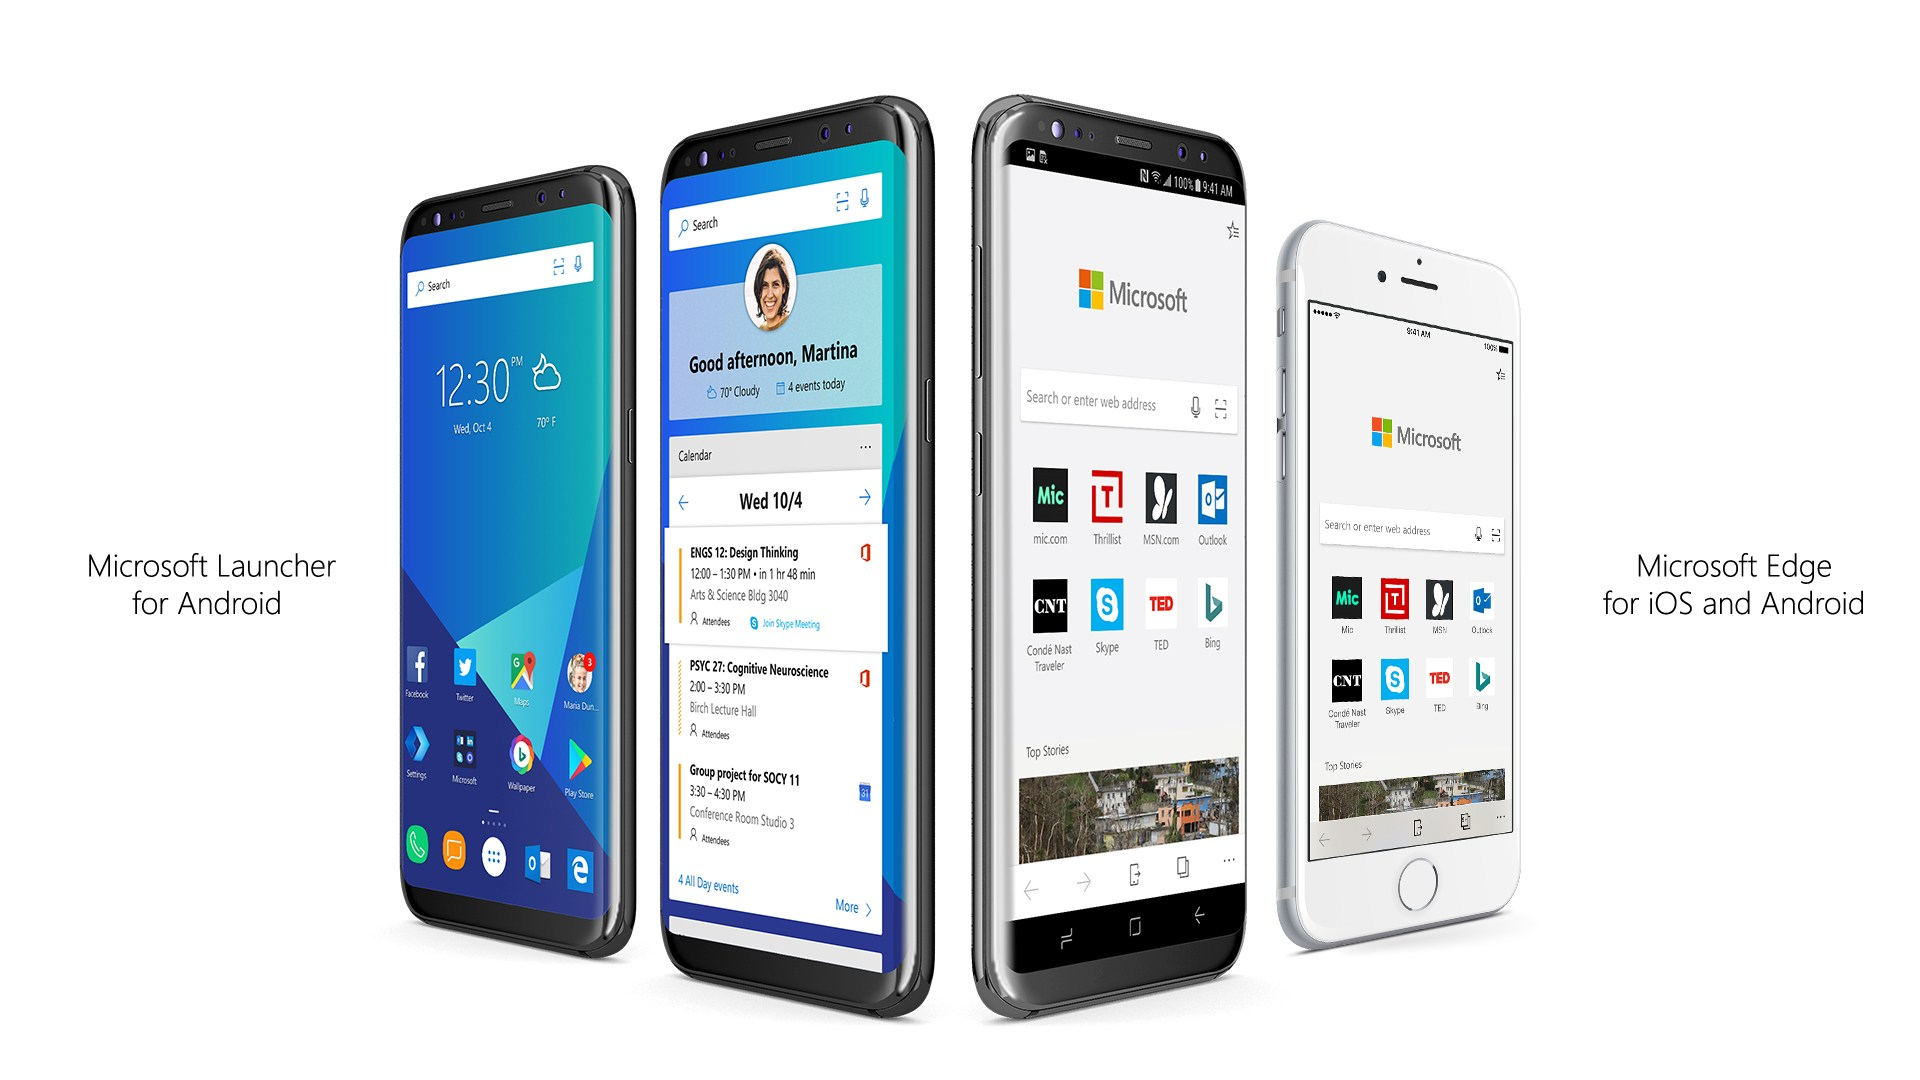 Fini Windows Mobile, Microsoft mise à fond sur Android et iOS avec son launcher et Edge